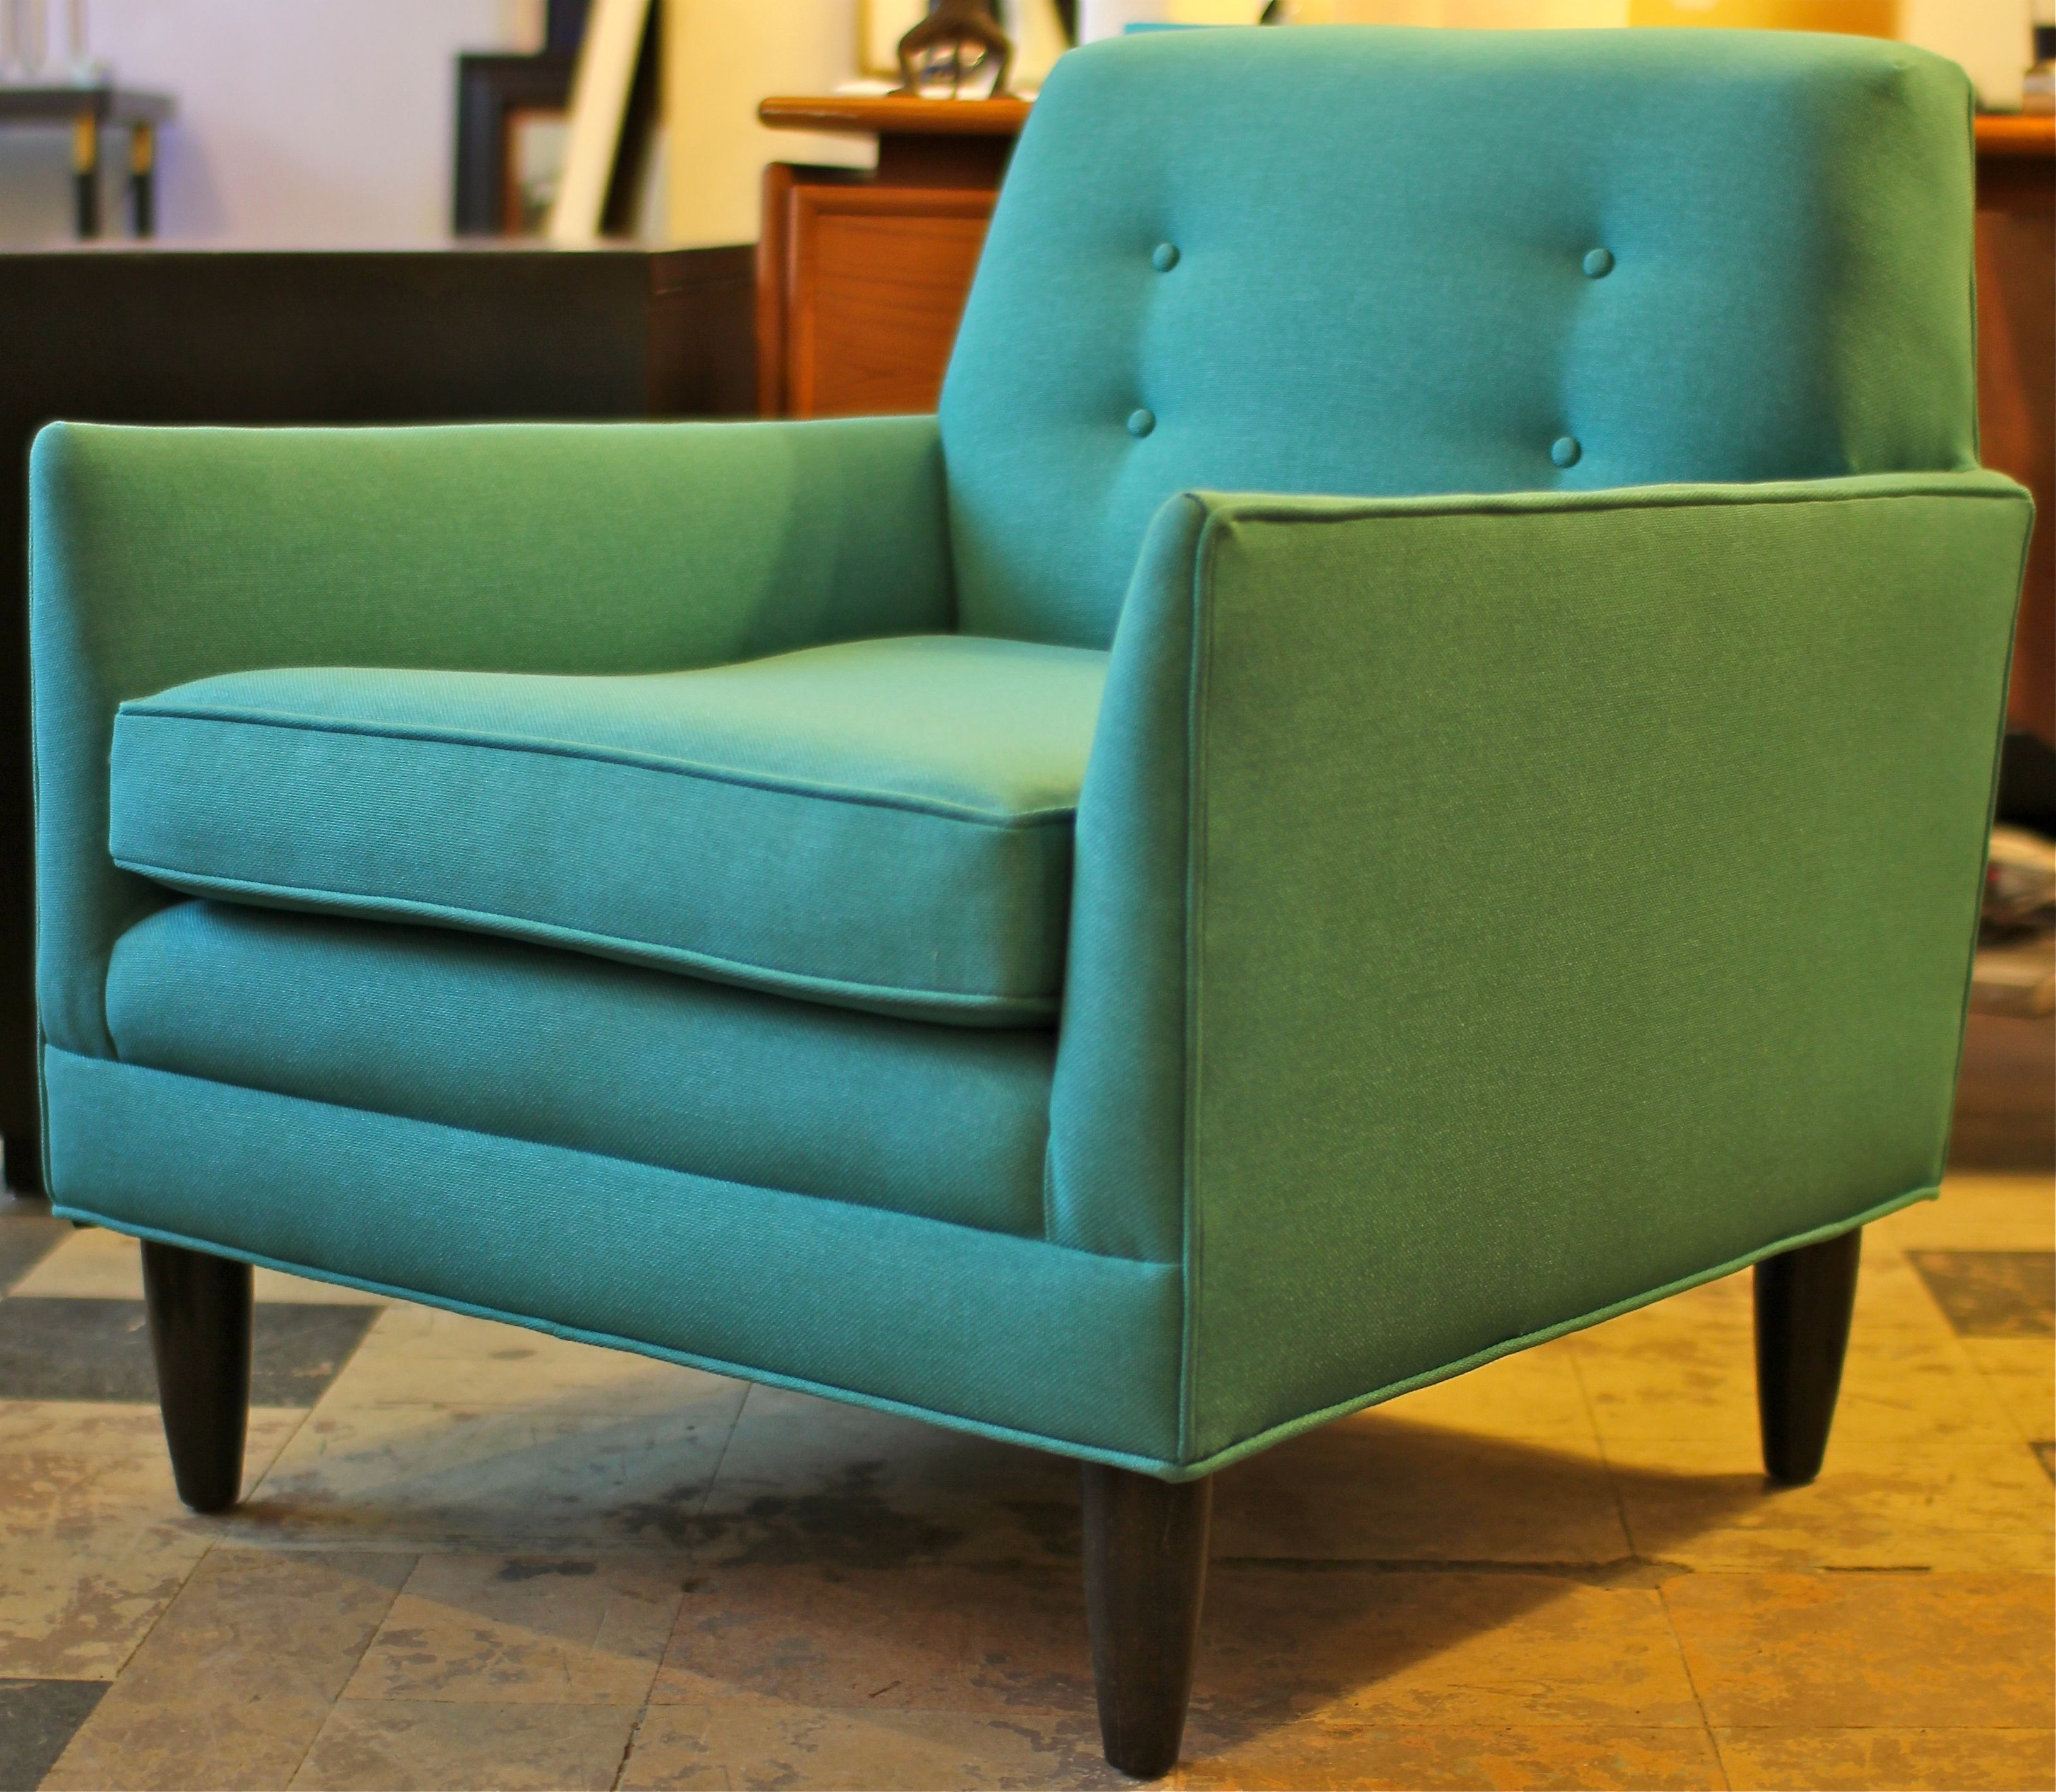 ^ 1000+ images about furniture on Pinterest Mid century modern ...